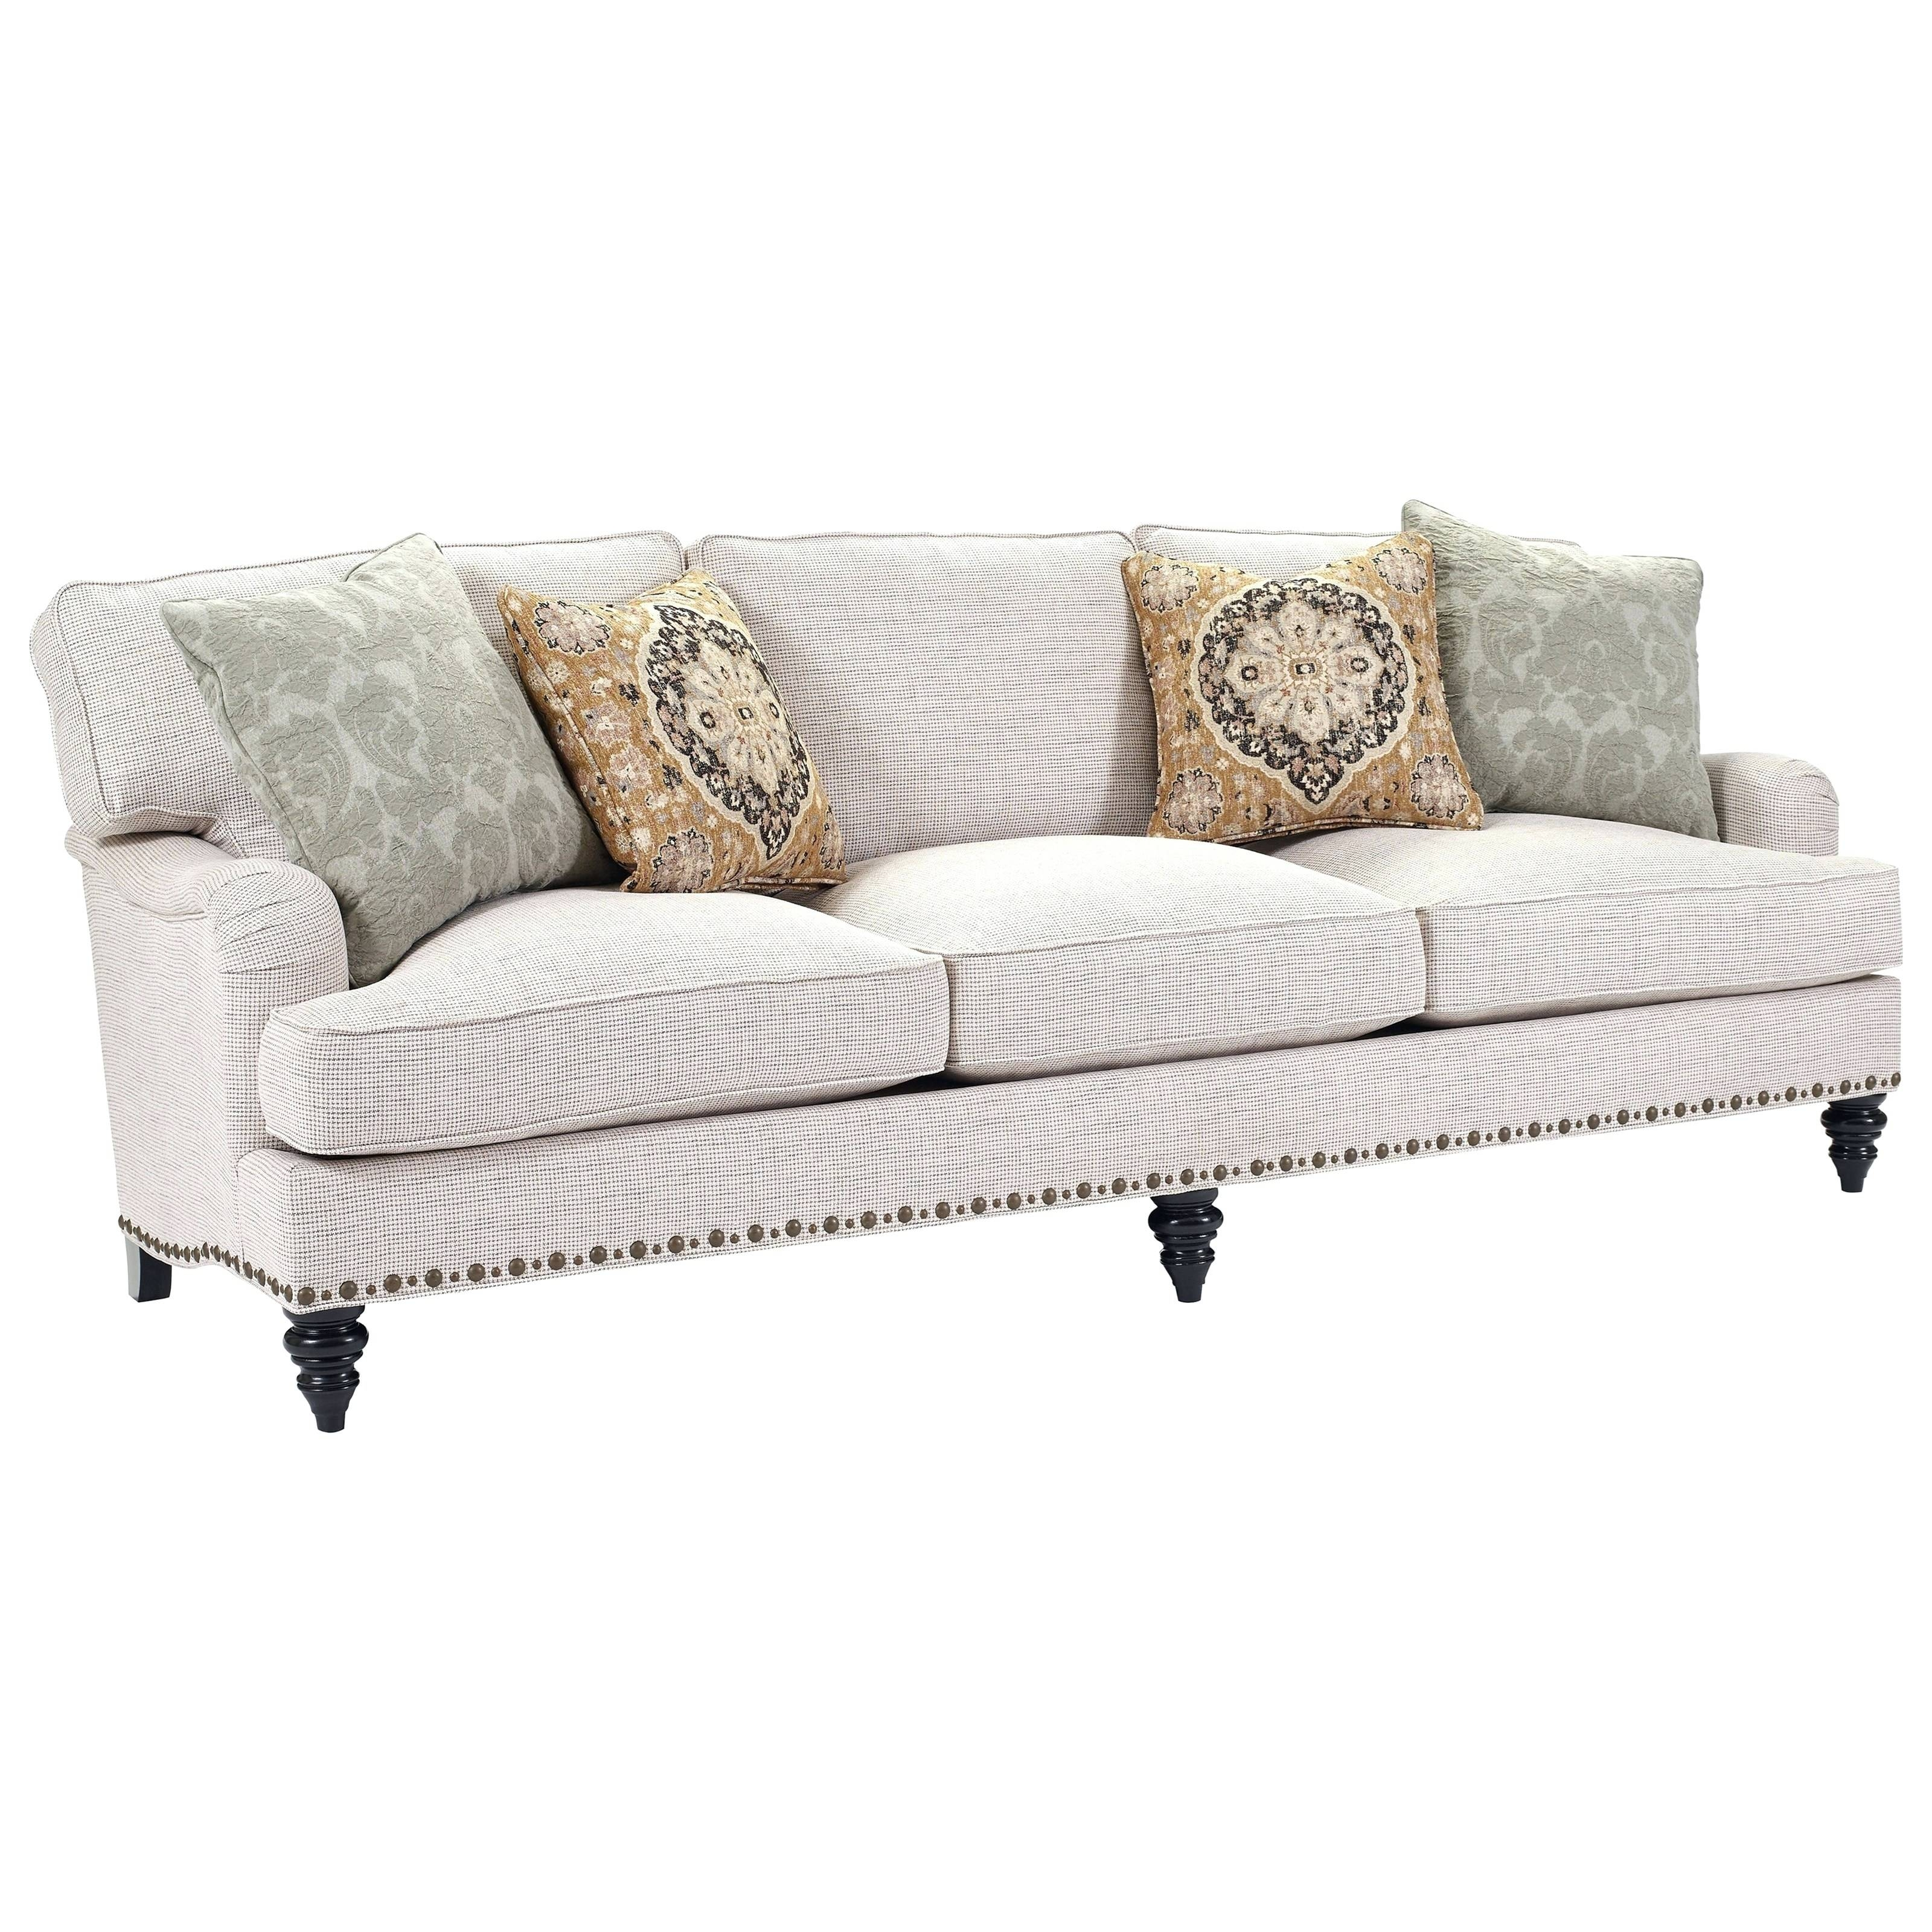 Delicieux Loveseat ~ Broyhill Cambridge Sofa And Loveseat Broyhill Emily For Broyhill  Emily Sofas (Image 14